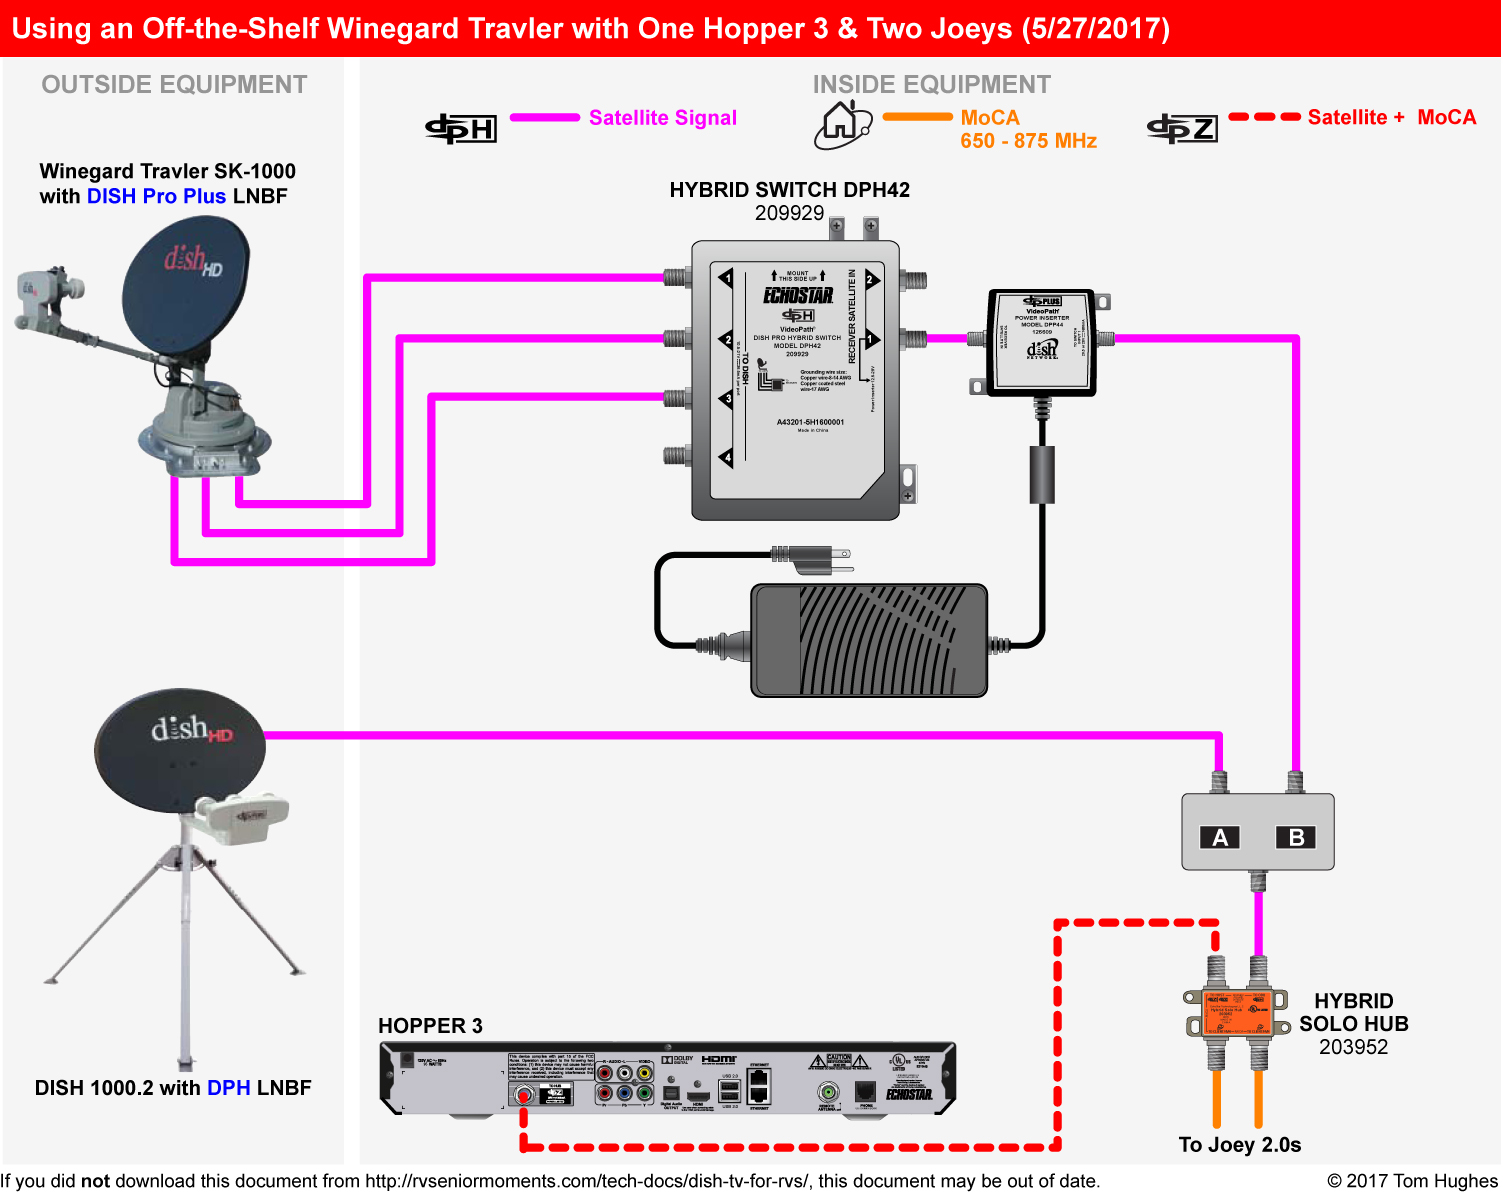 02349F Winegard Rv Satellite Wiring Diagram Inside | Wiring Resources | Winegard Rv Satellite Wiring Diagrams |  | Wiring Resources